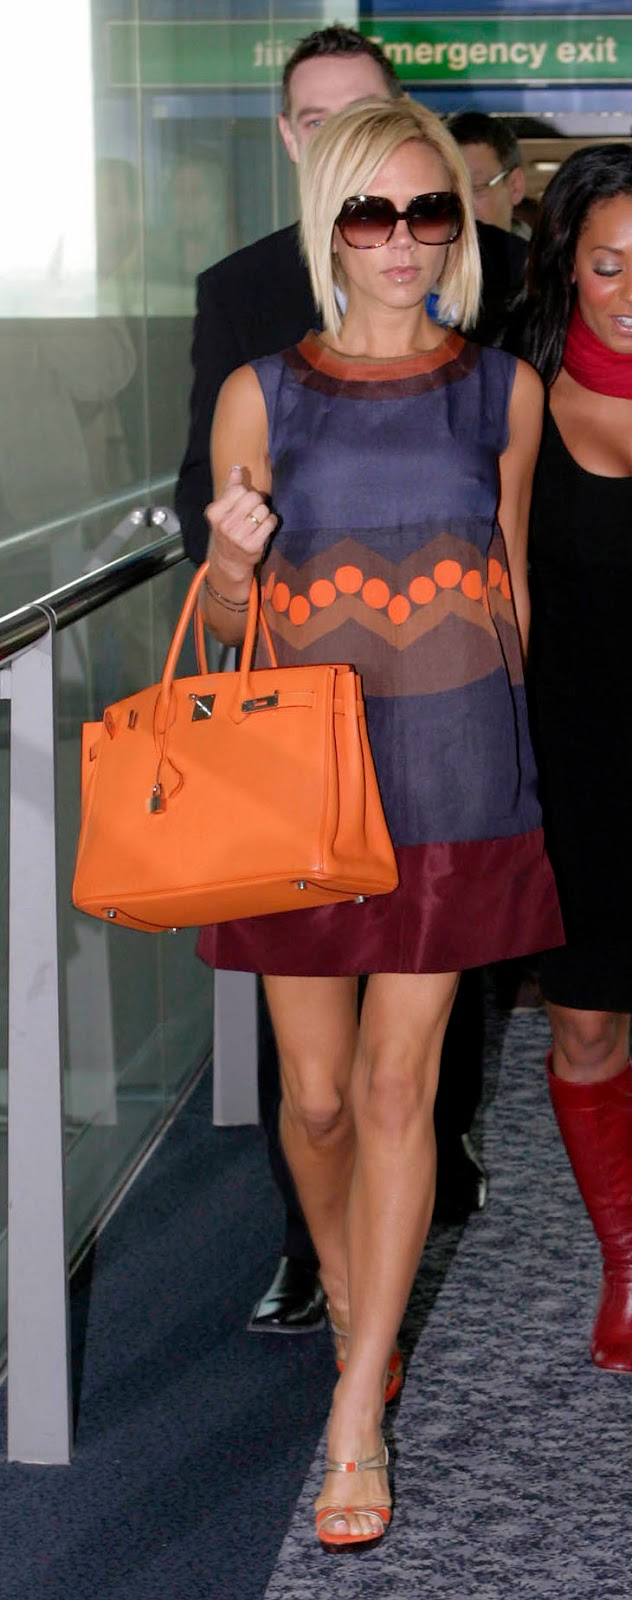 Eniwhere Fashion - Birkin Bag - Hermès - Victoria Beckham